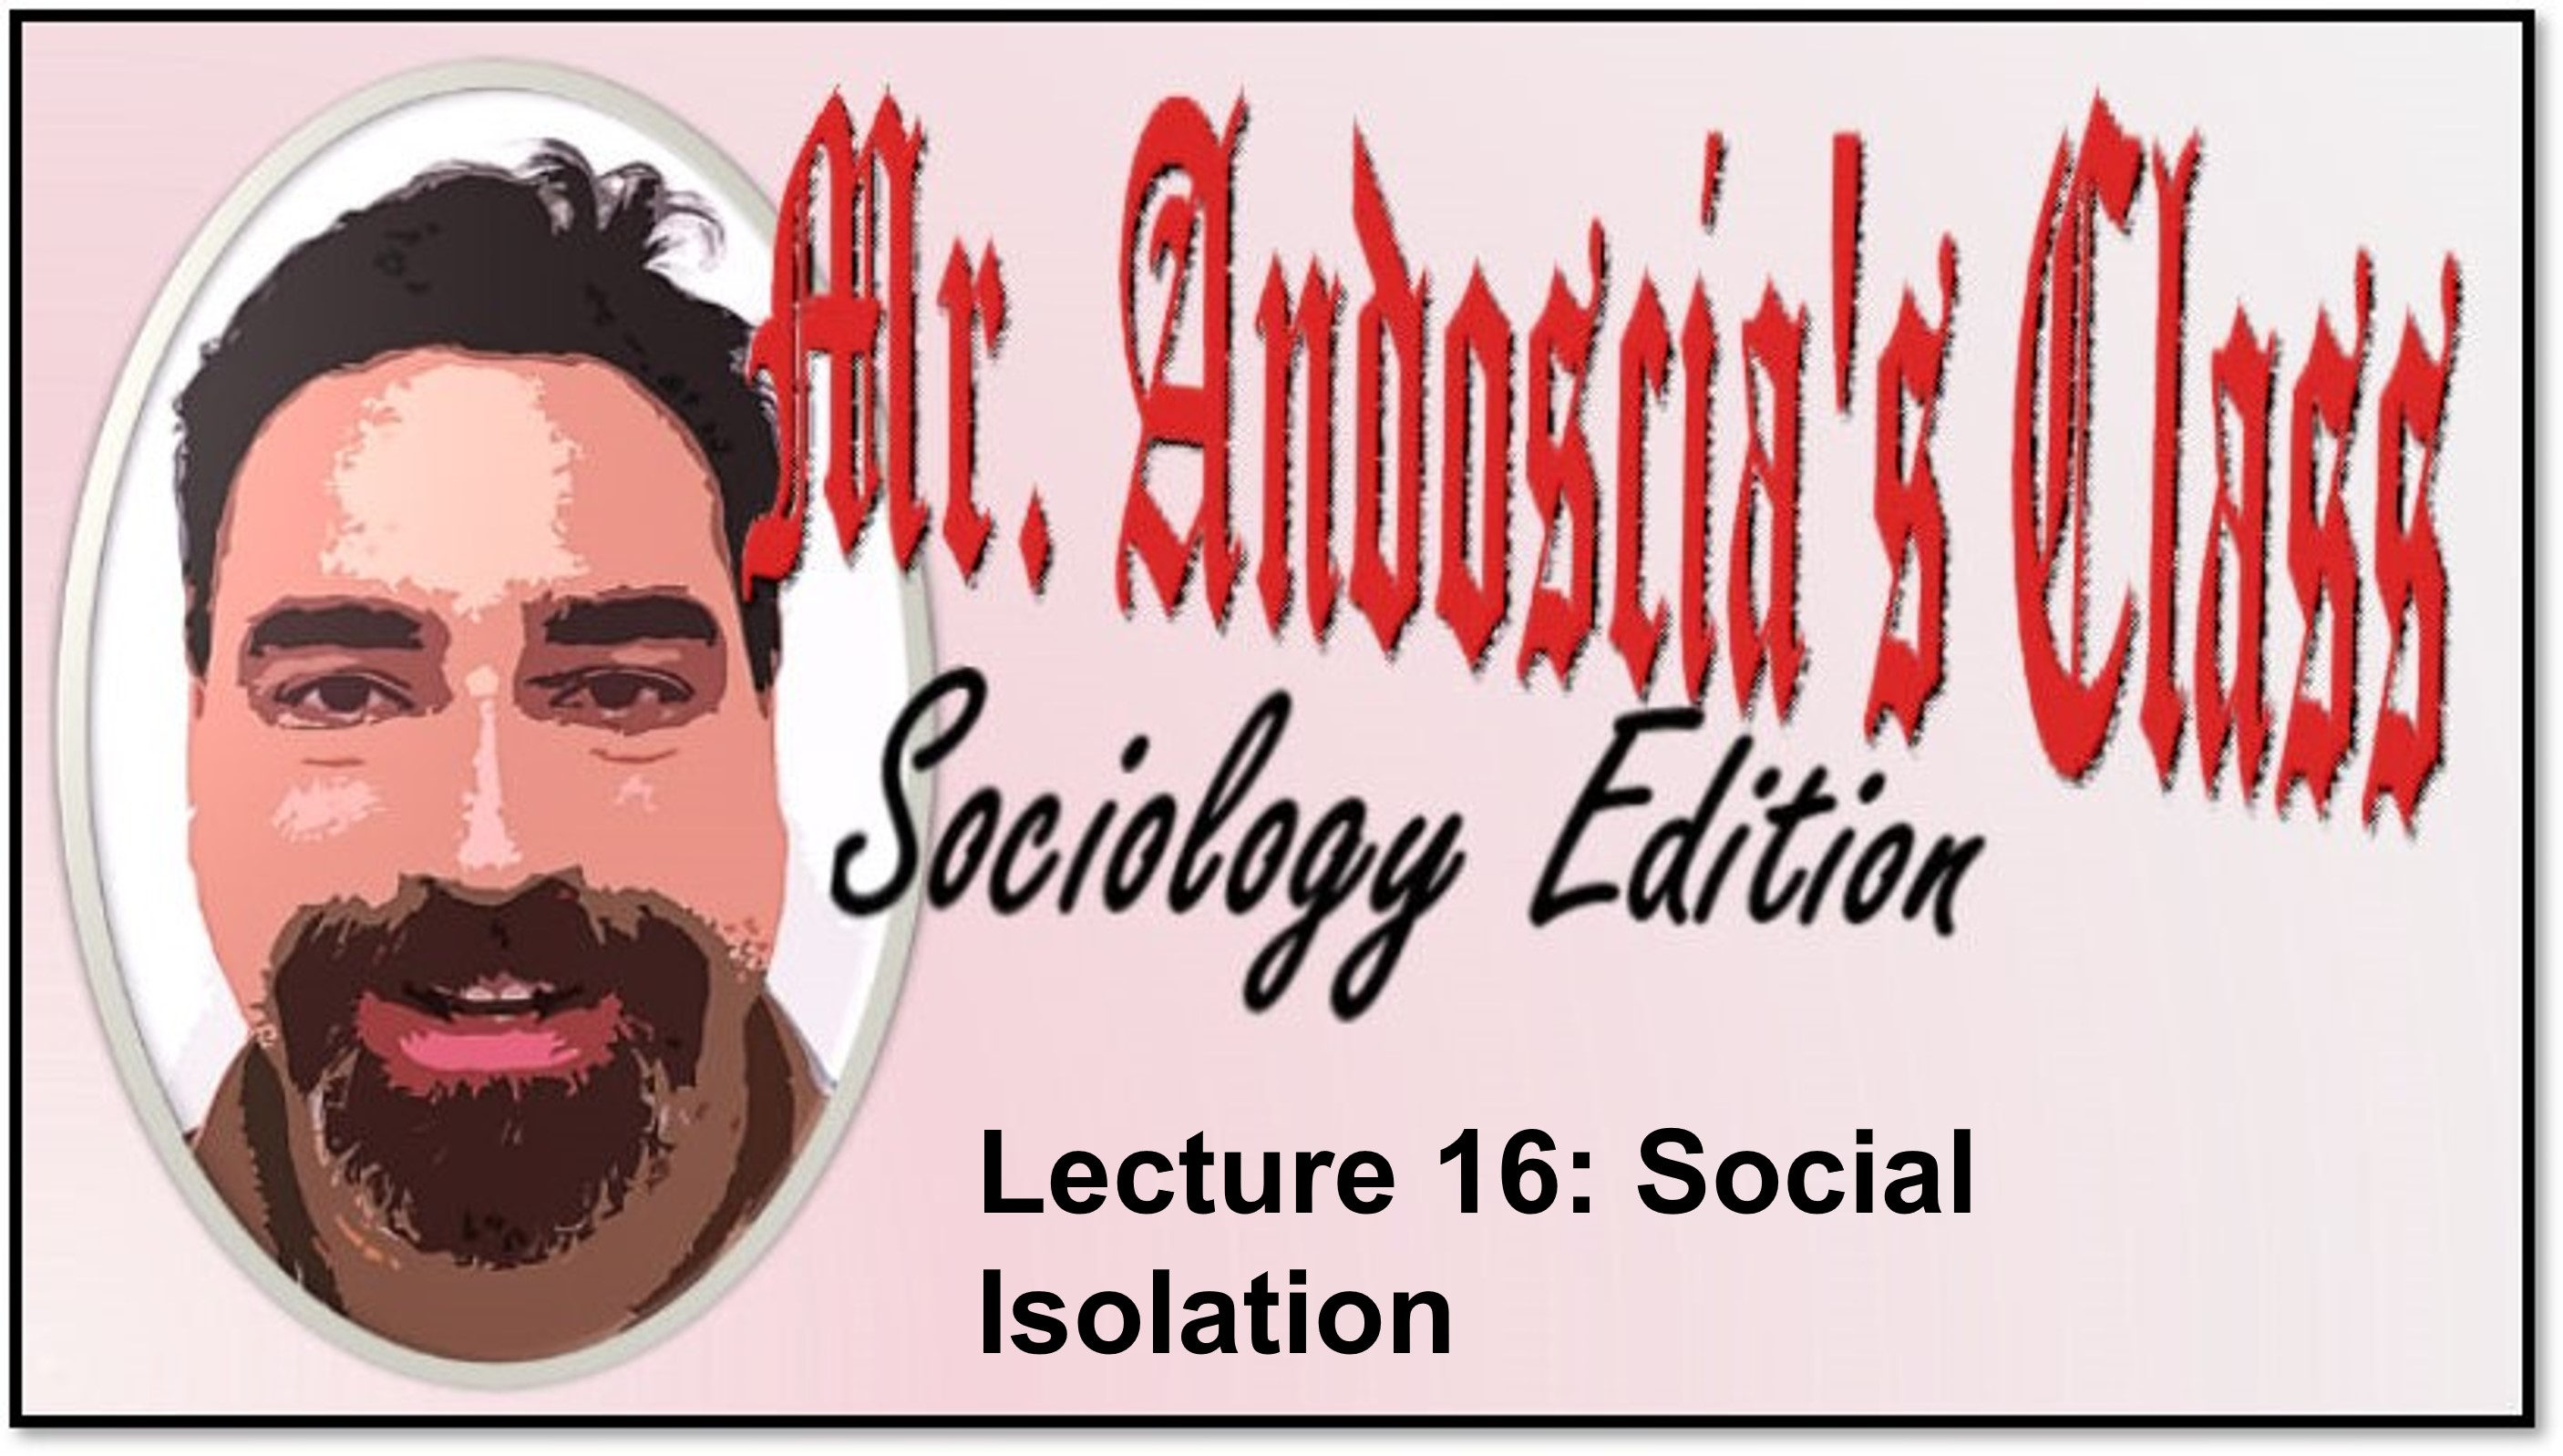 Lecture 16: Social Isolation